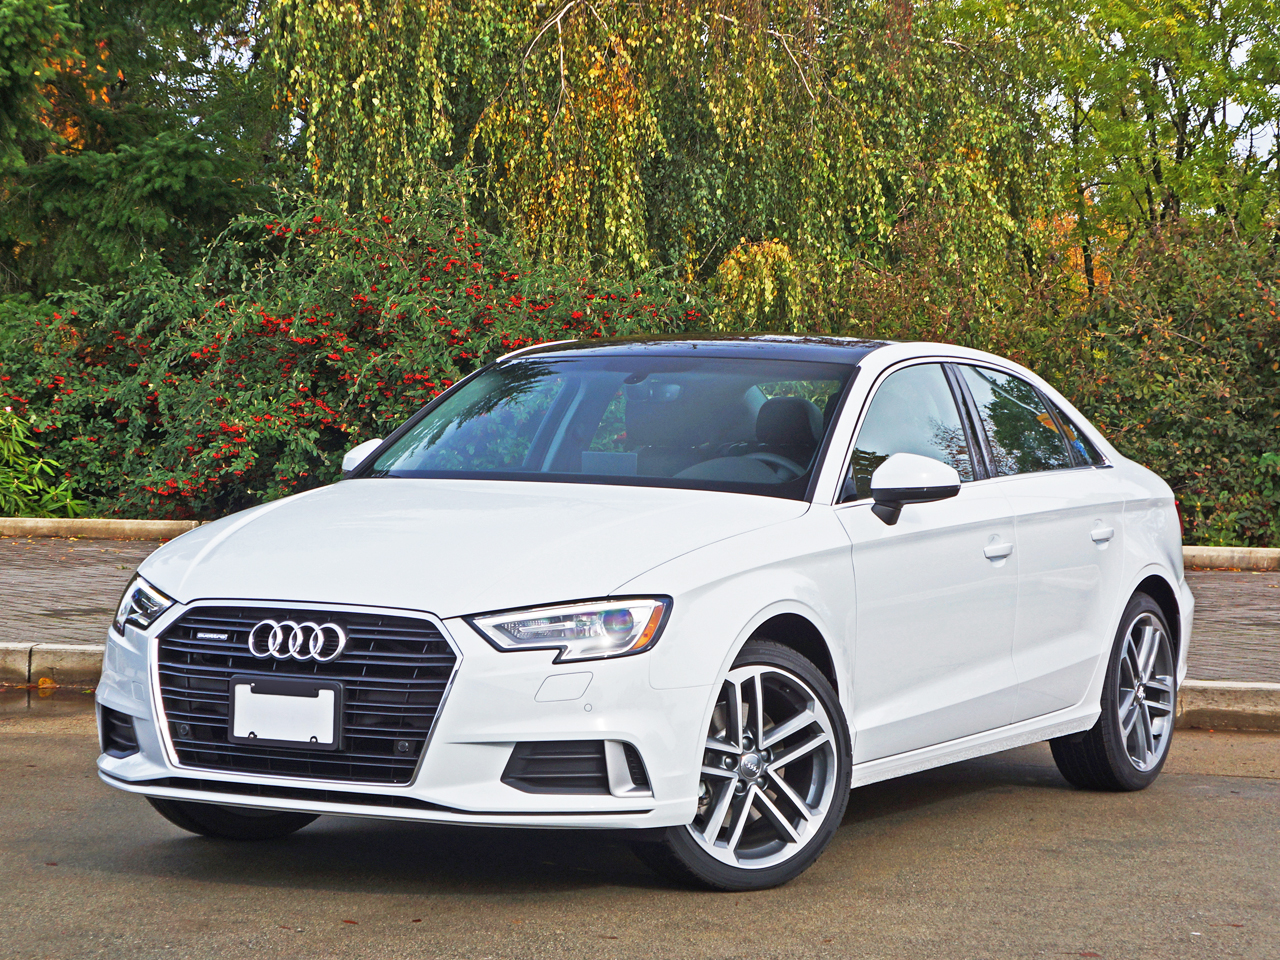 2017 Audi A3 2.0 TFSI Quattro Progressiv Road Test Review